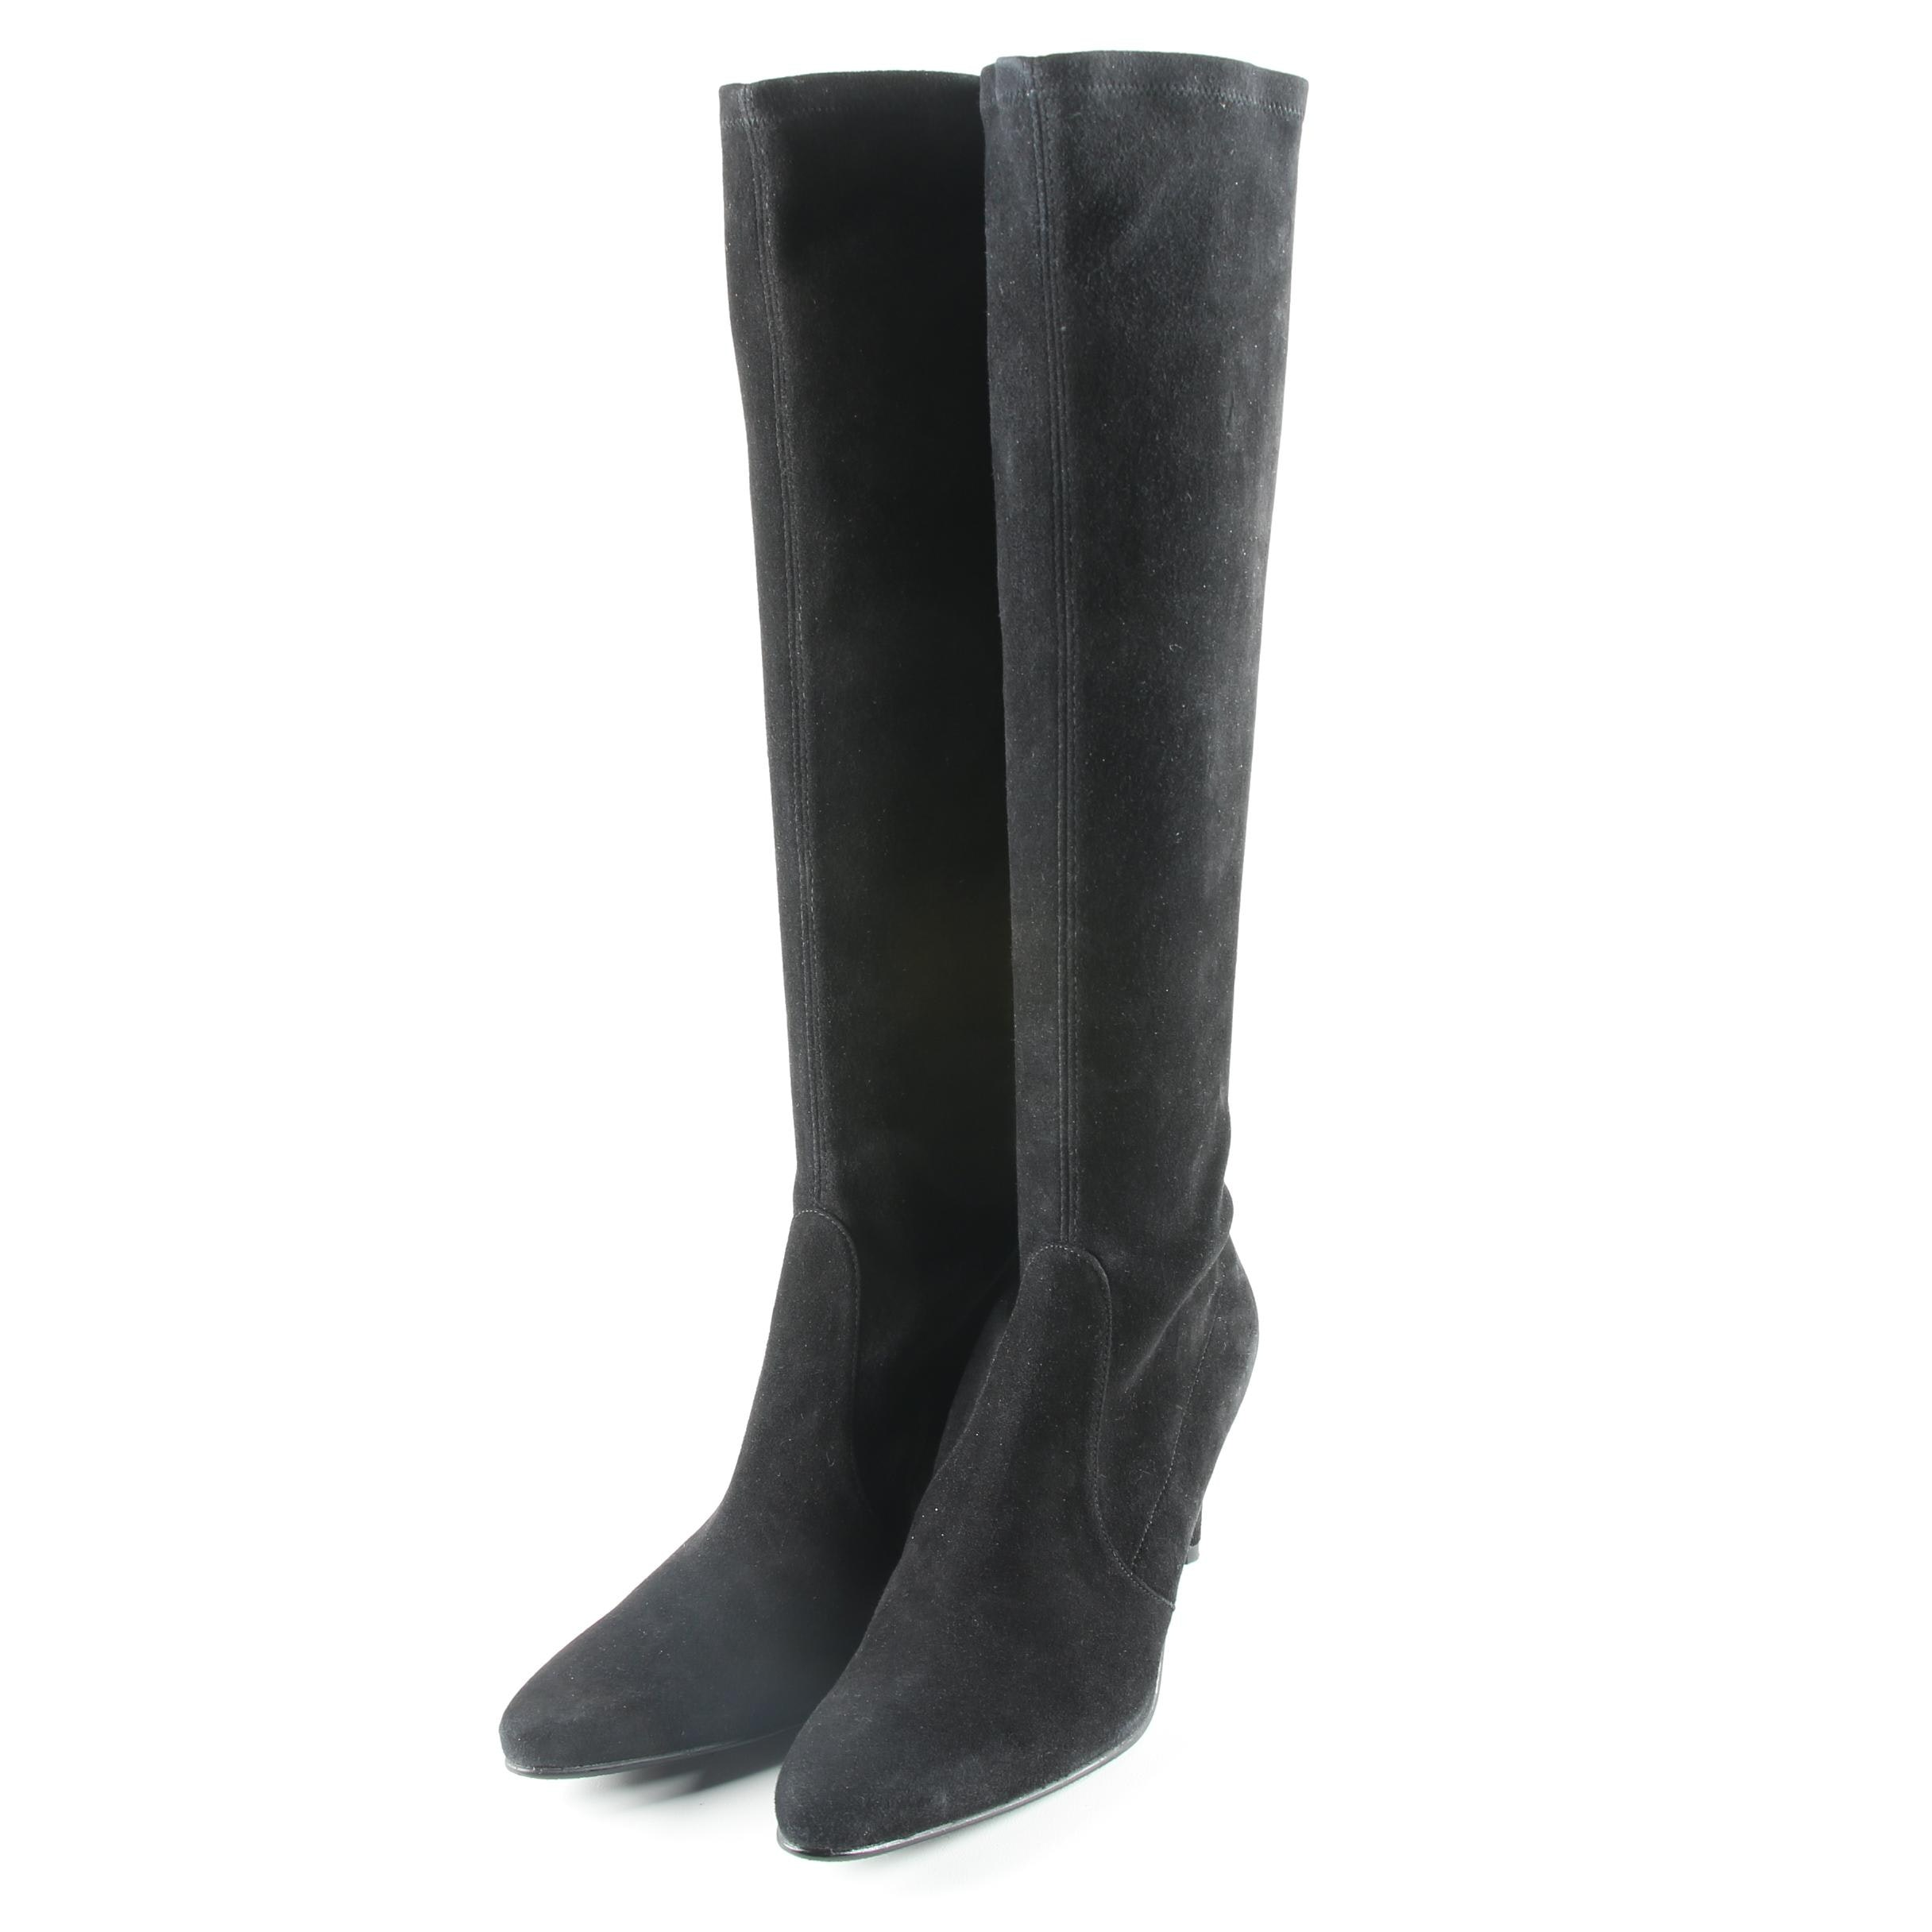 Stuart Weitzman Black Suede Knee-High Boots